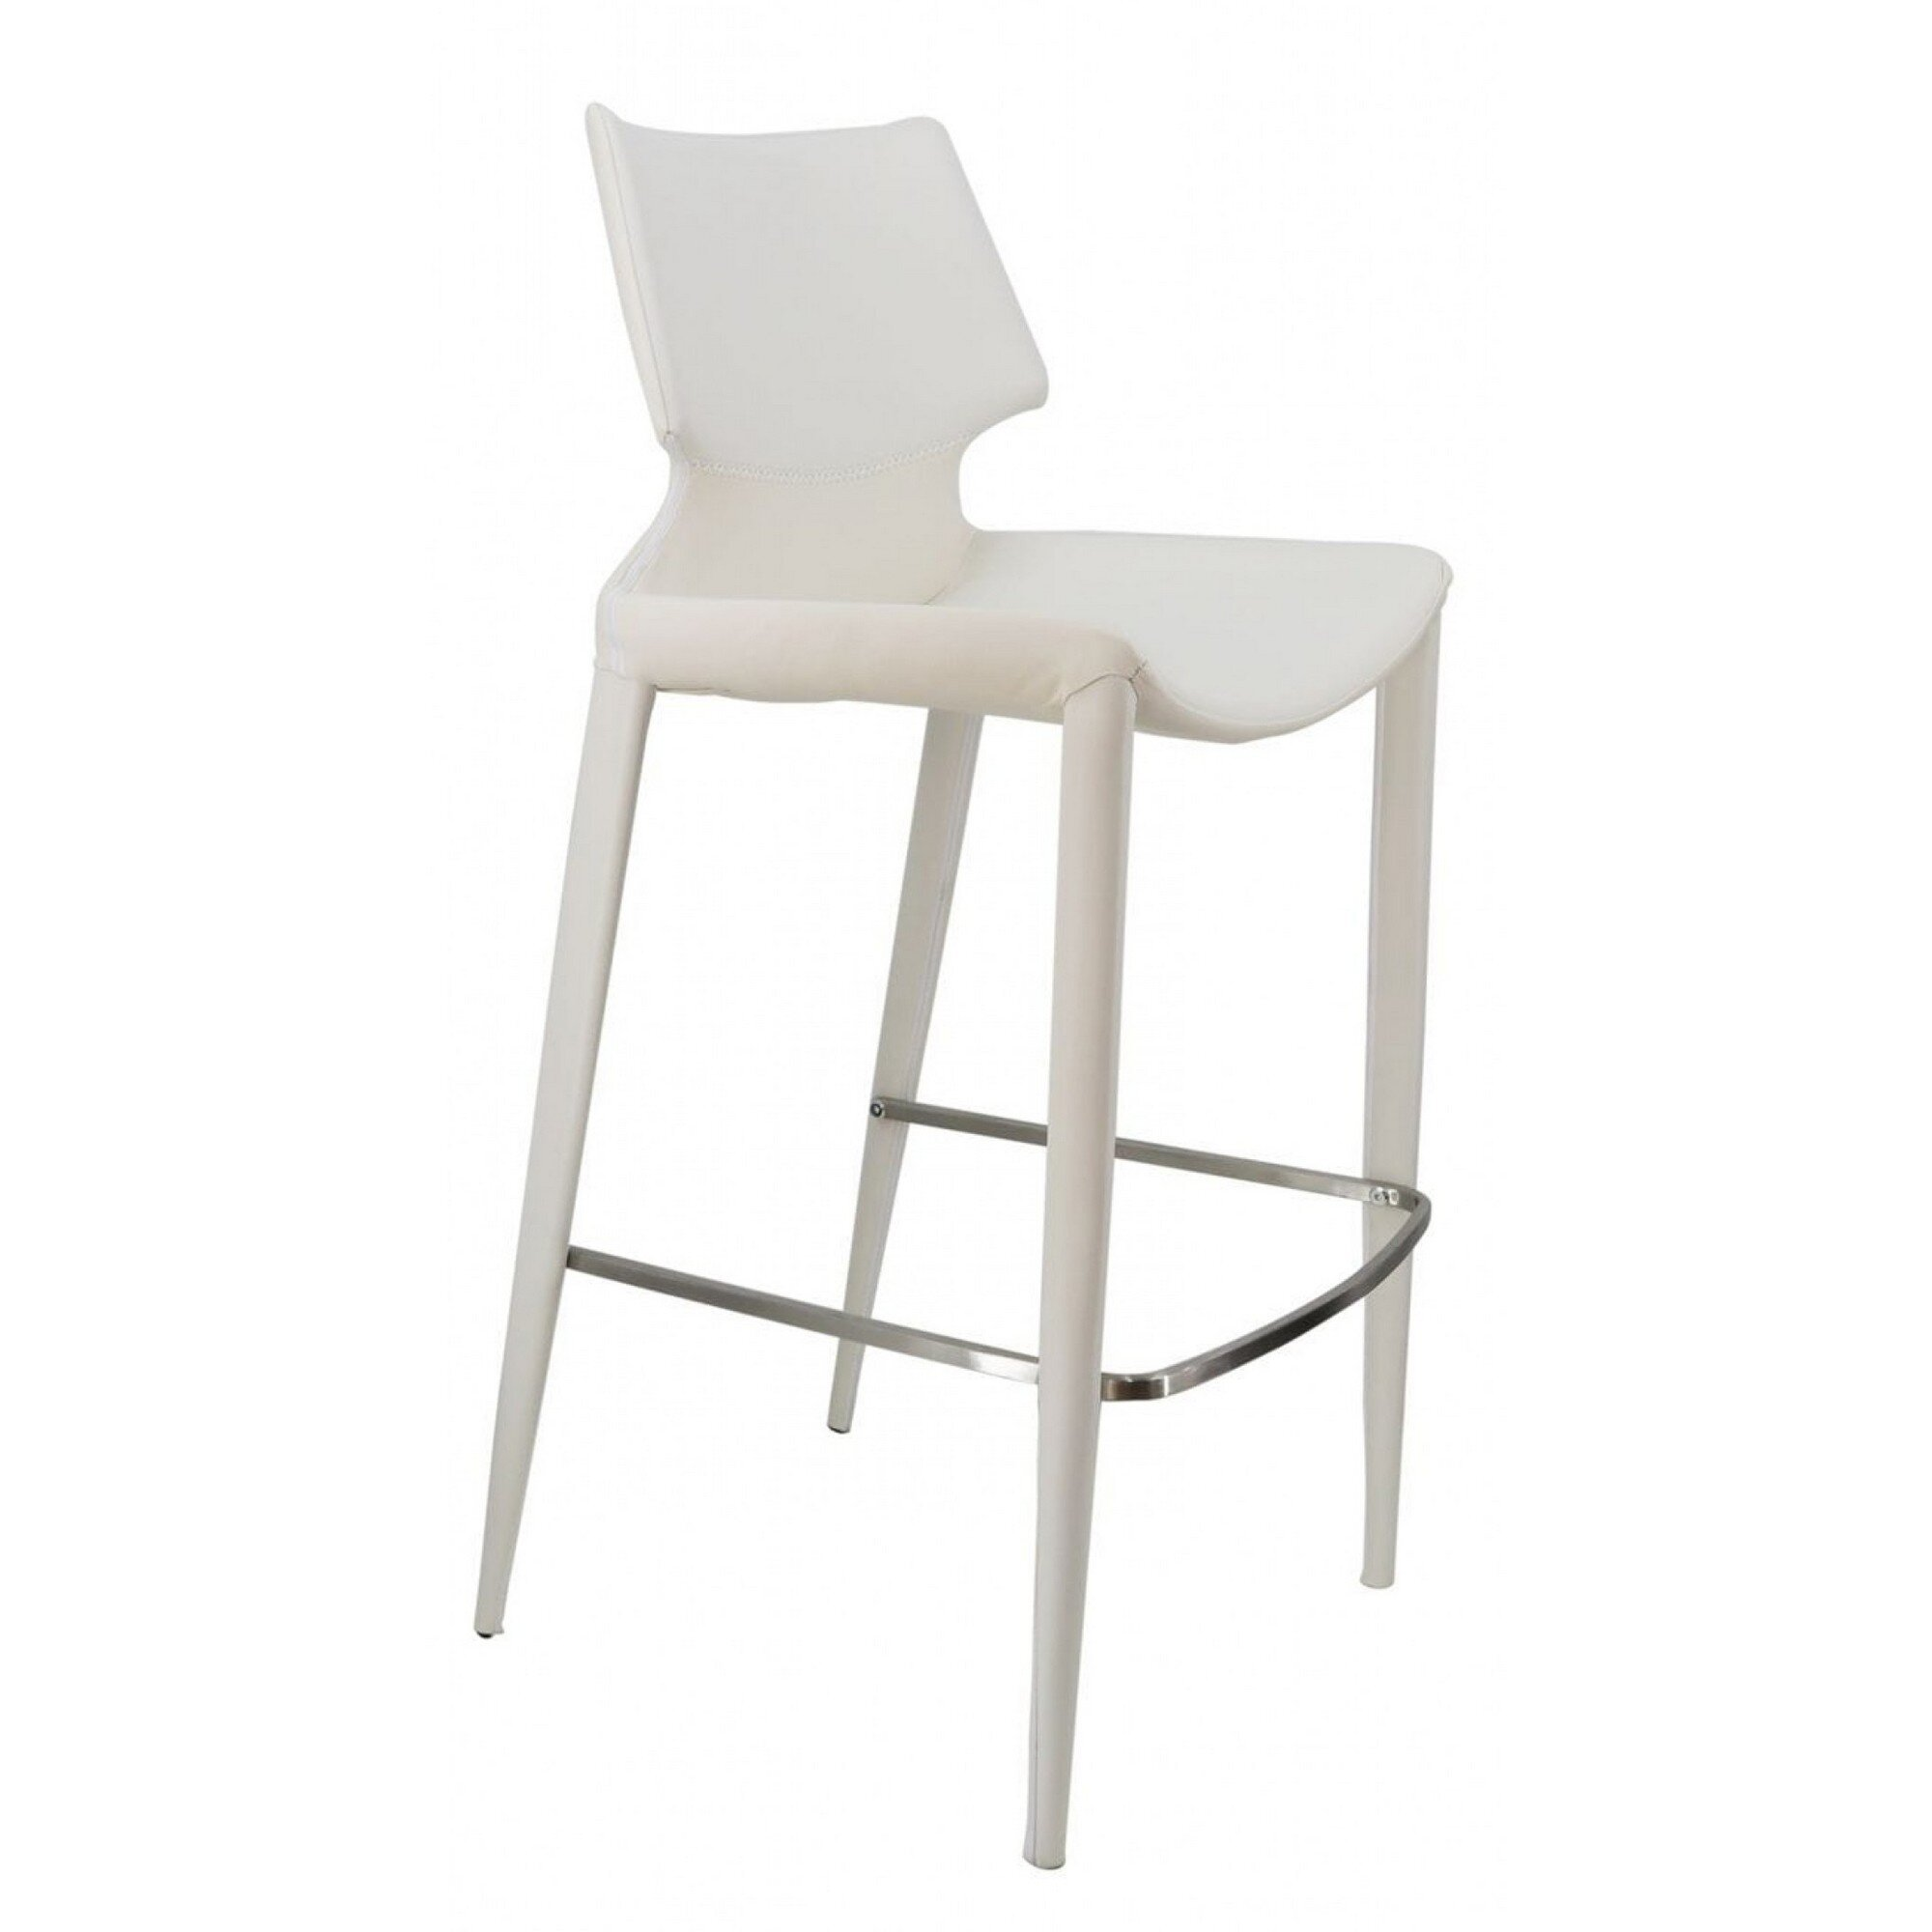 Saddle Seat Under 200 Lbs Capacity Bar Stools Counter Stools You Ll Love In 2021 Wayfair